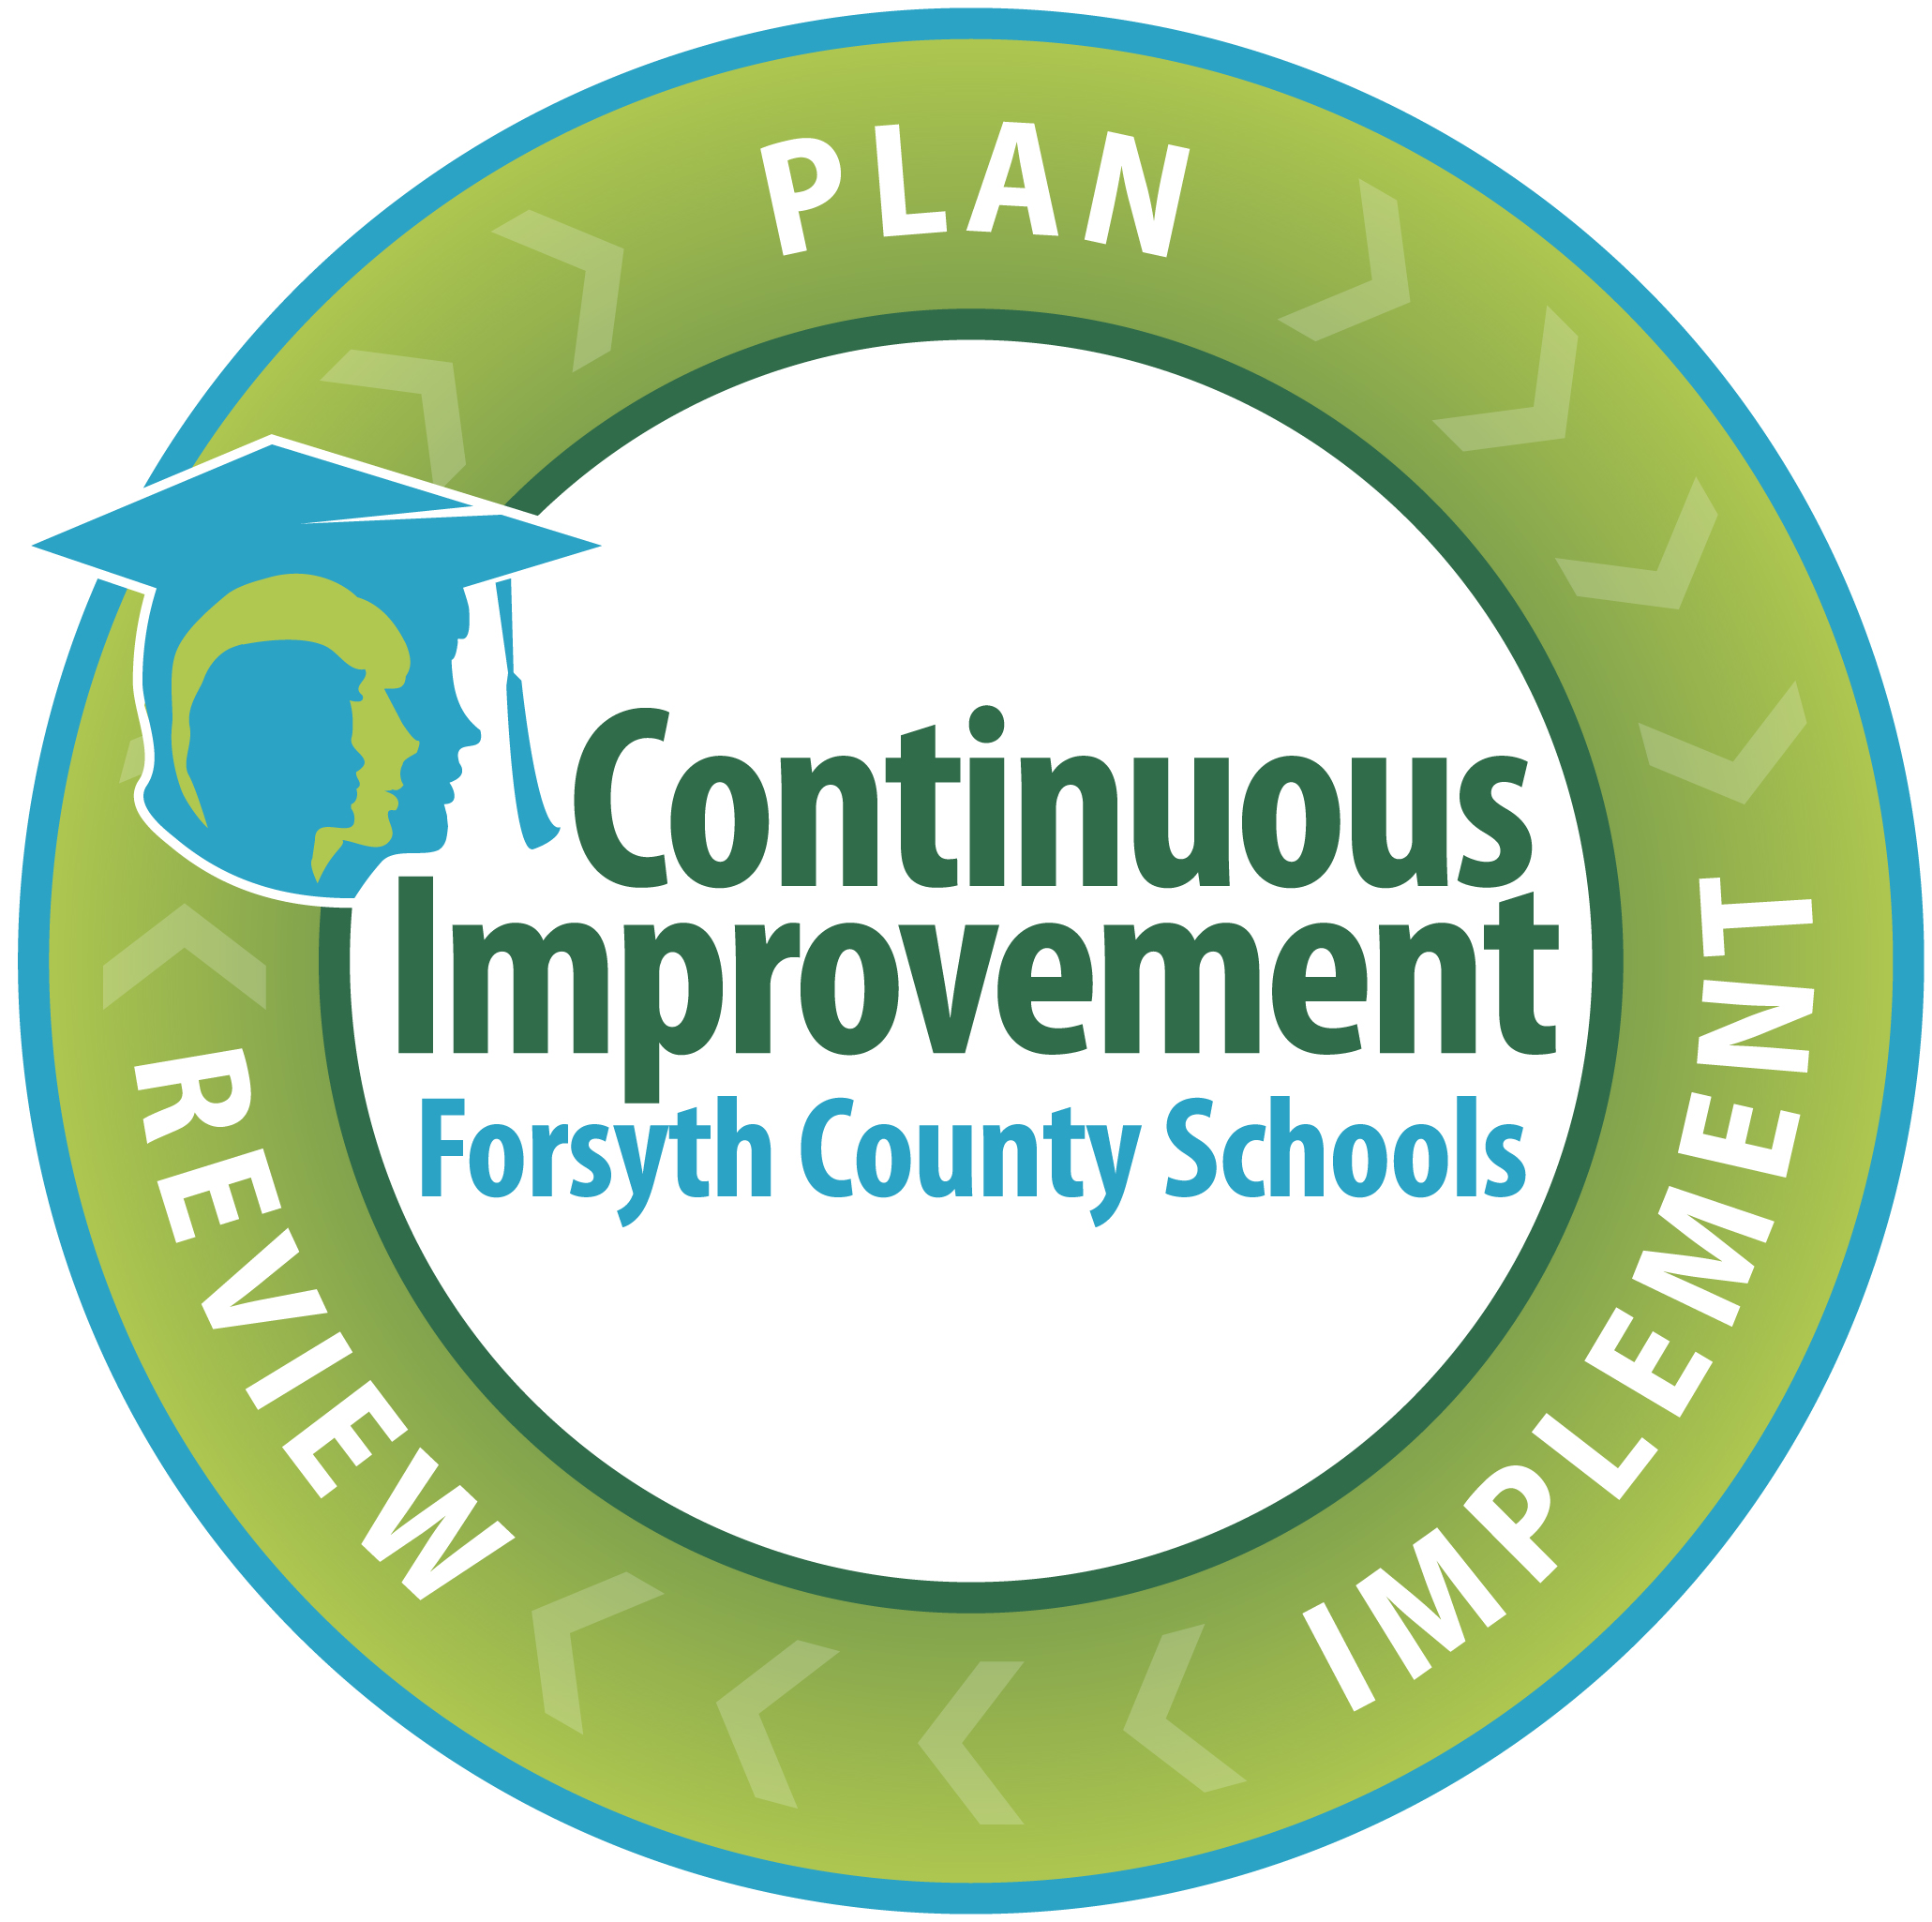 forsyth county The latest tweets from forsyth co schools (@fcschoolsga) official account: forsyth co schools is home to over 47800 students in 37 schools fcs is recognized across the state & nation as a leader in public education cumming, georgia.